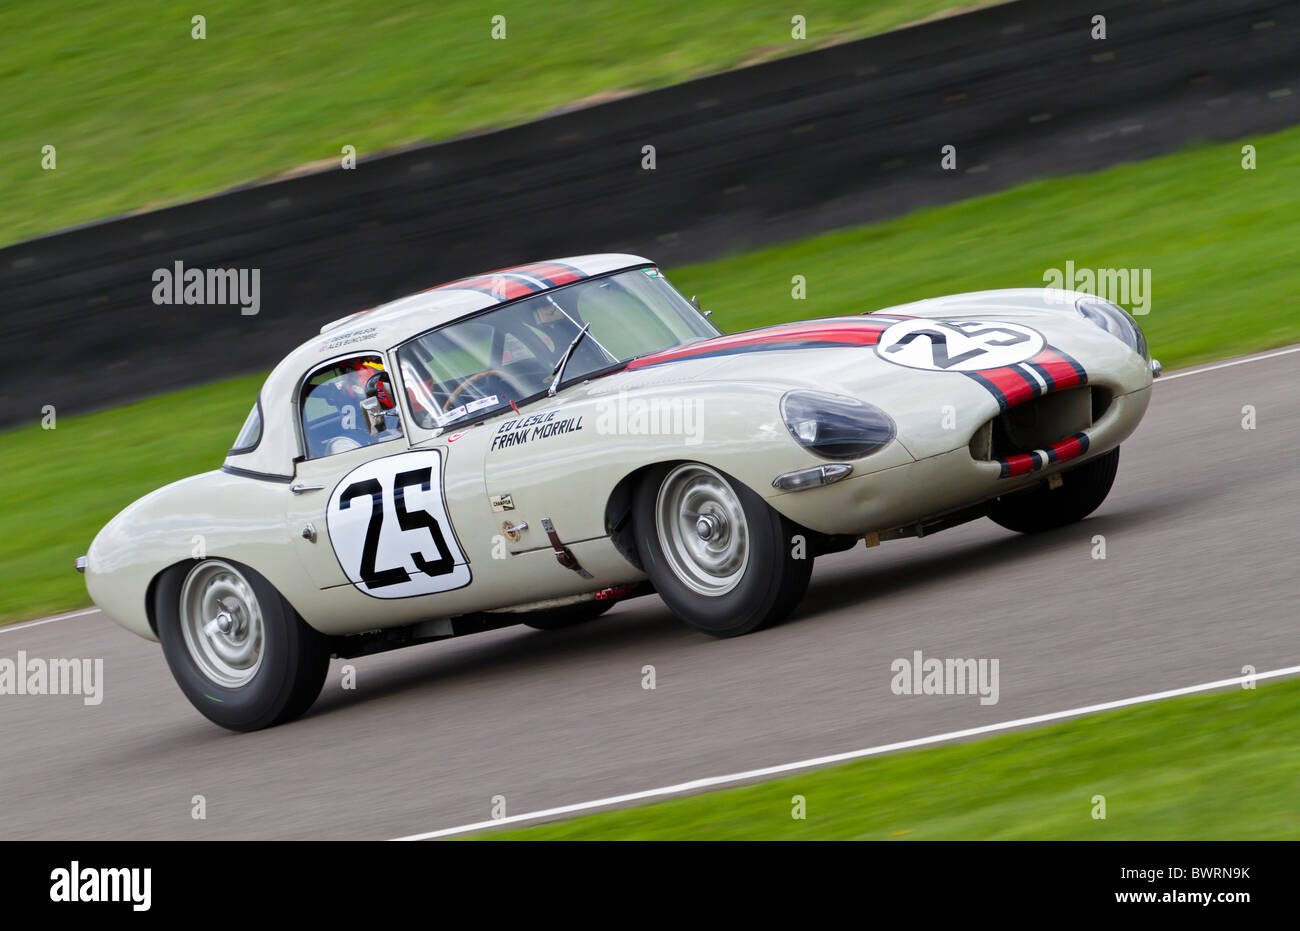 1963 Jaguar E-Type Lightweight during the RAC TT Celebration race at the 2010 Goodwood Revival meeting, Sussex, - Stock Image